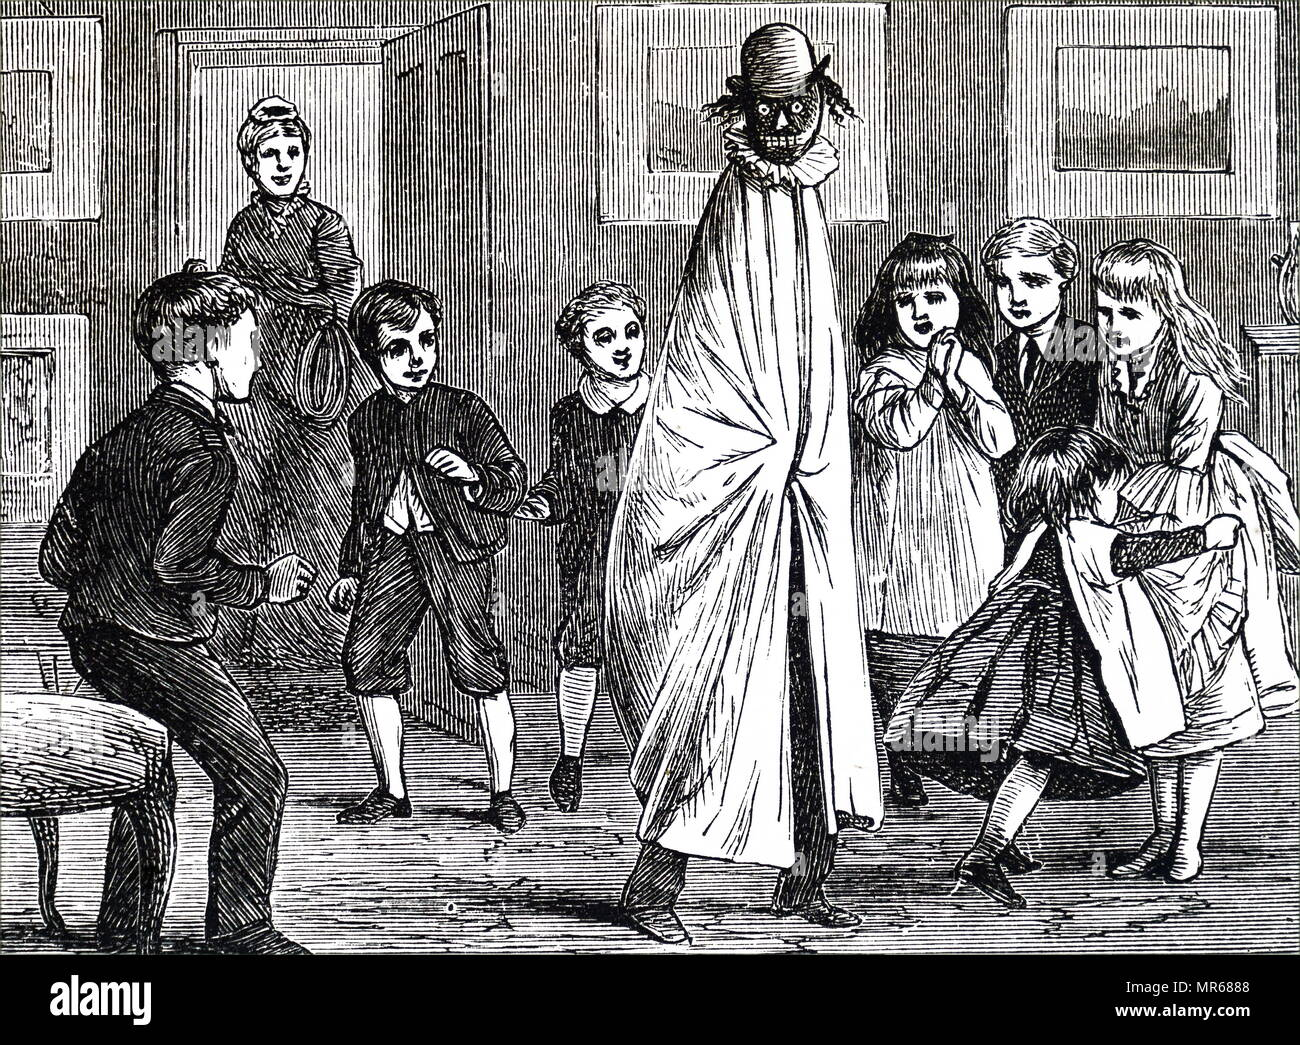 Engraving depicting children playing a game: one boy is seated on the shoulders of another, and the two are enveloped in a loose cloth and a false head added. Dated 19th century - Stock Image